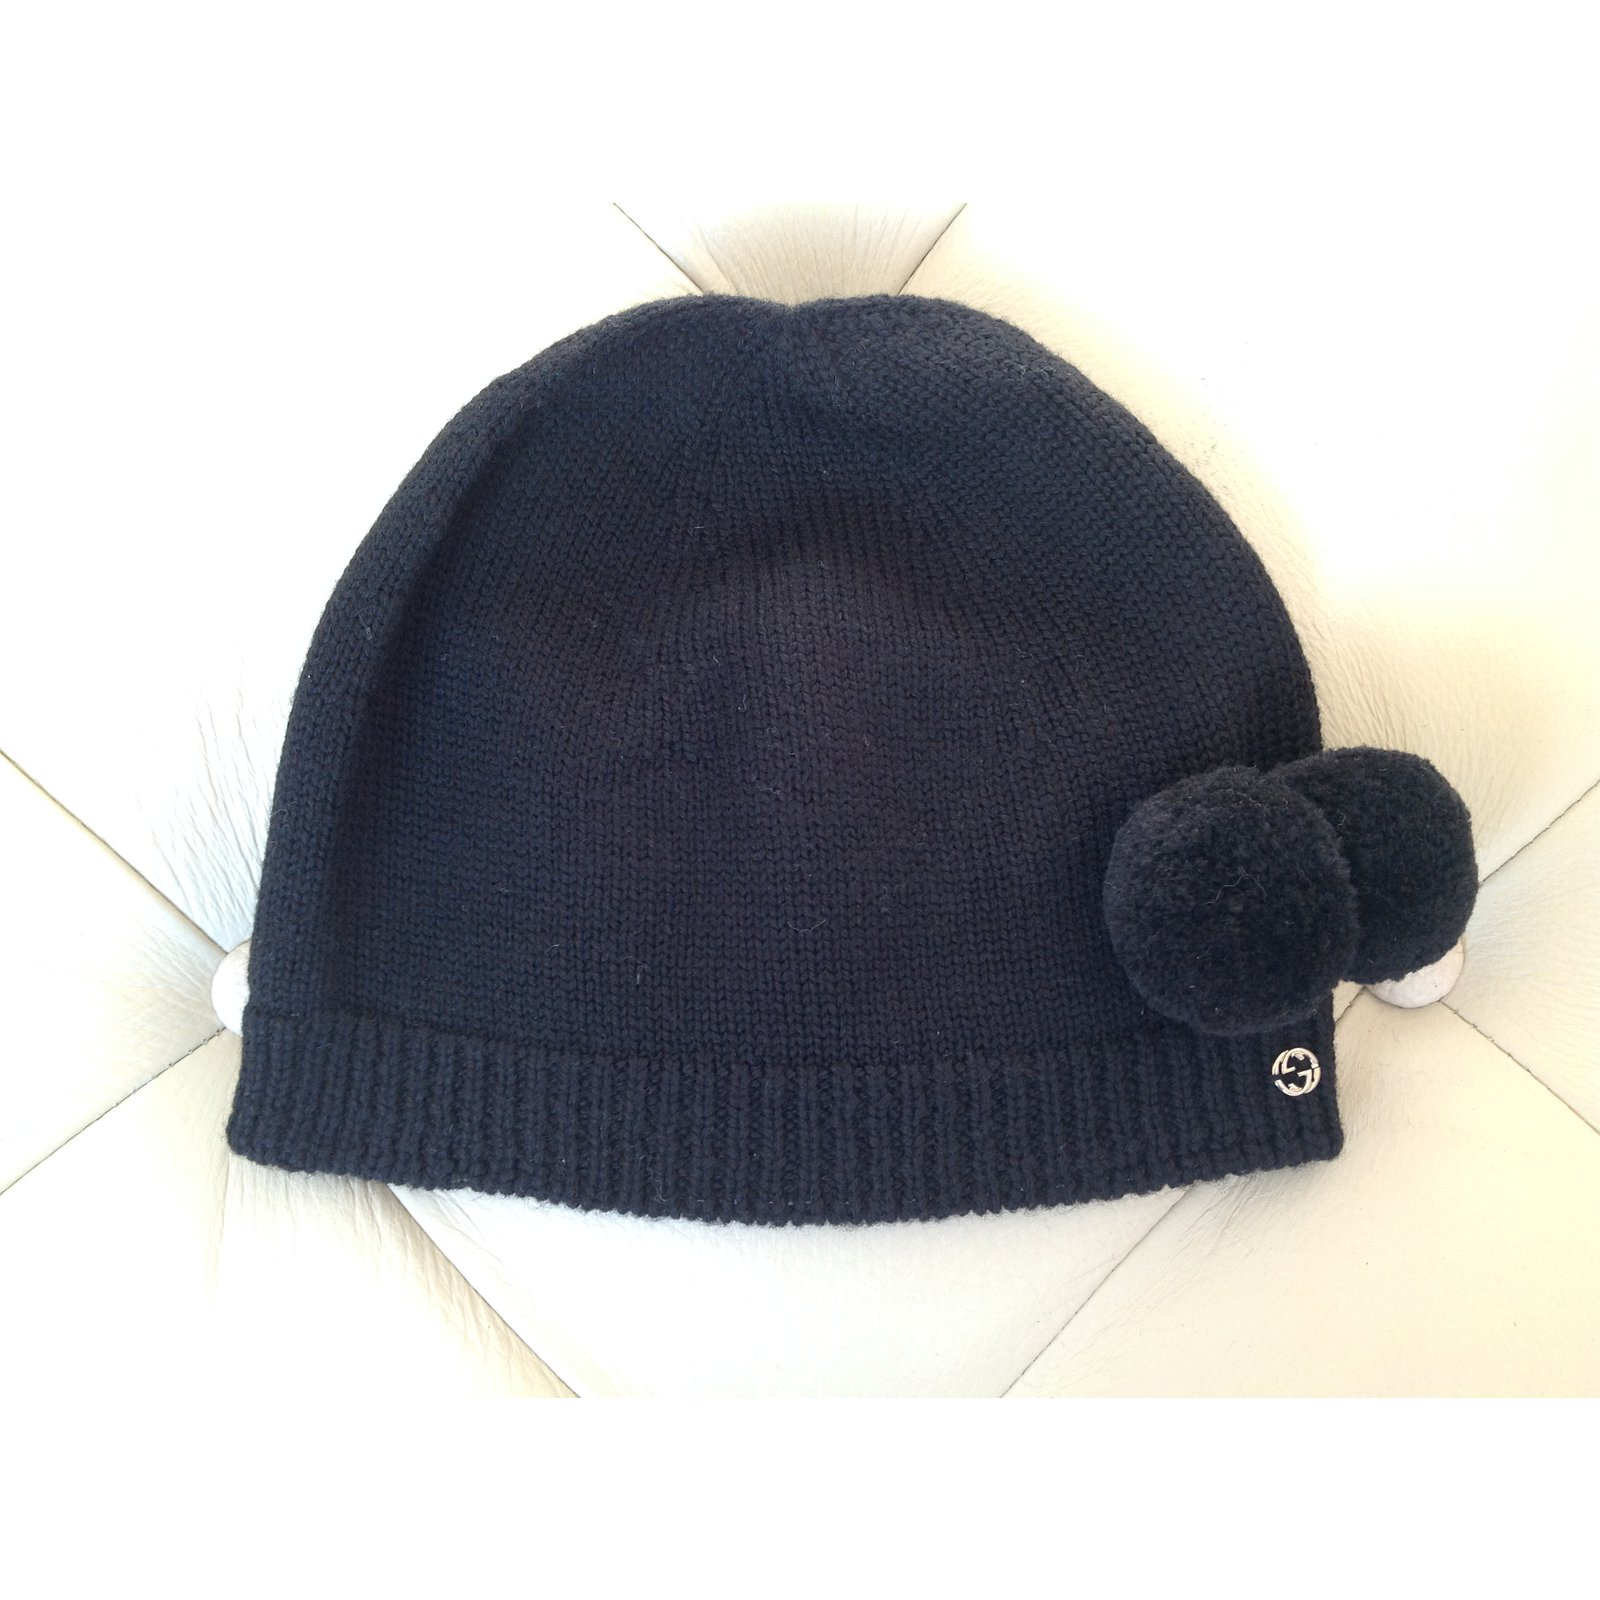 Gucci Gucci wool hat Hats Wool Black ref.47393 - Joli Closet 3662d44e31f